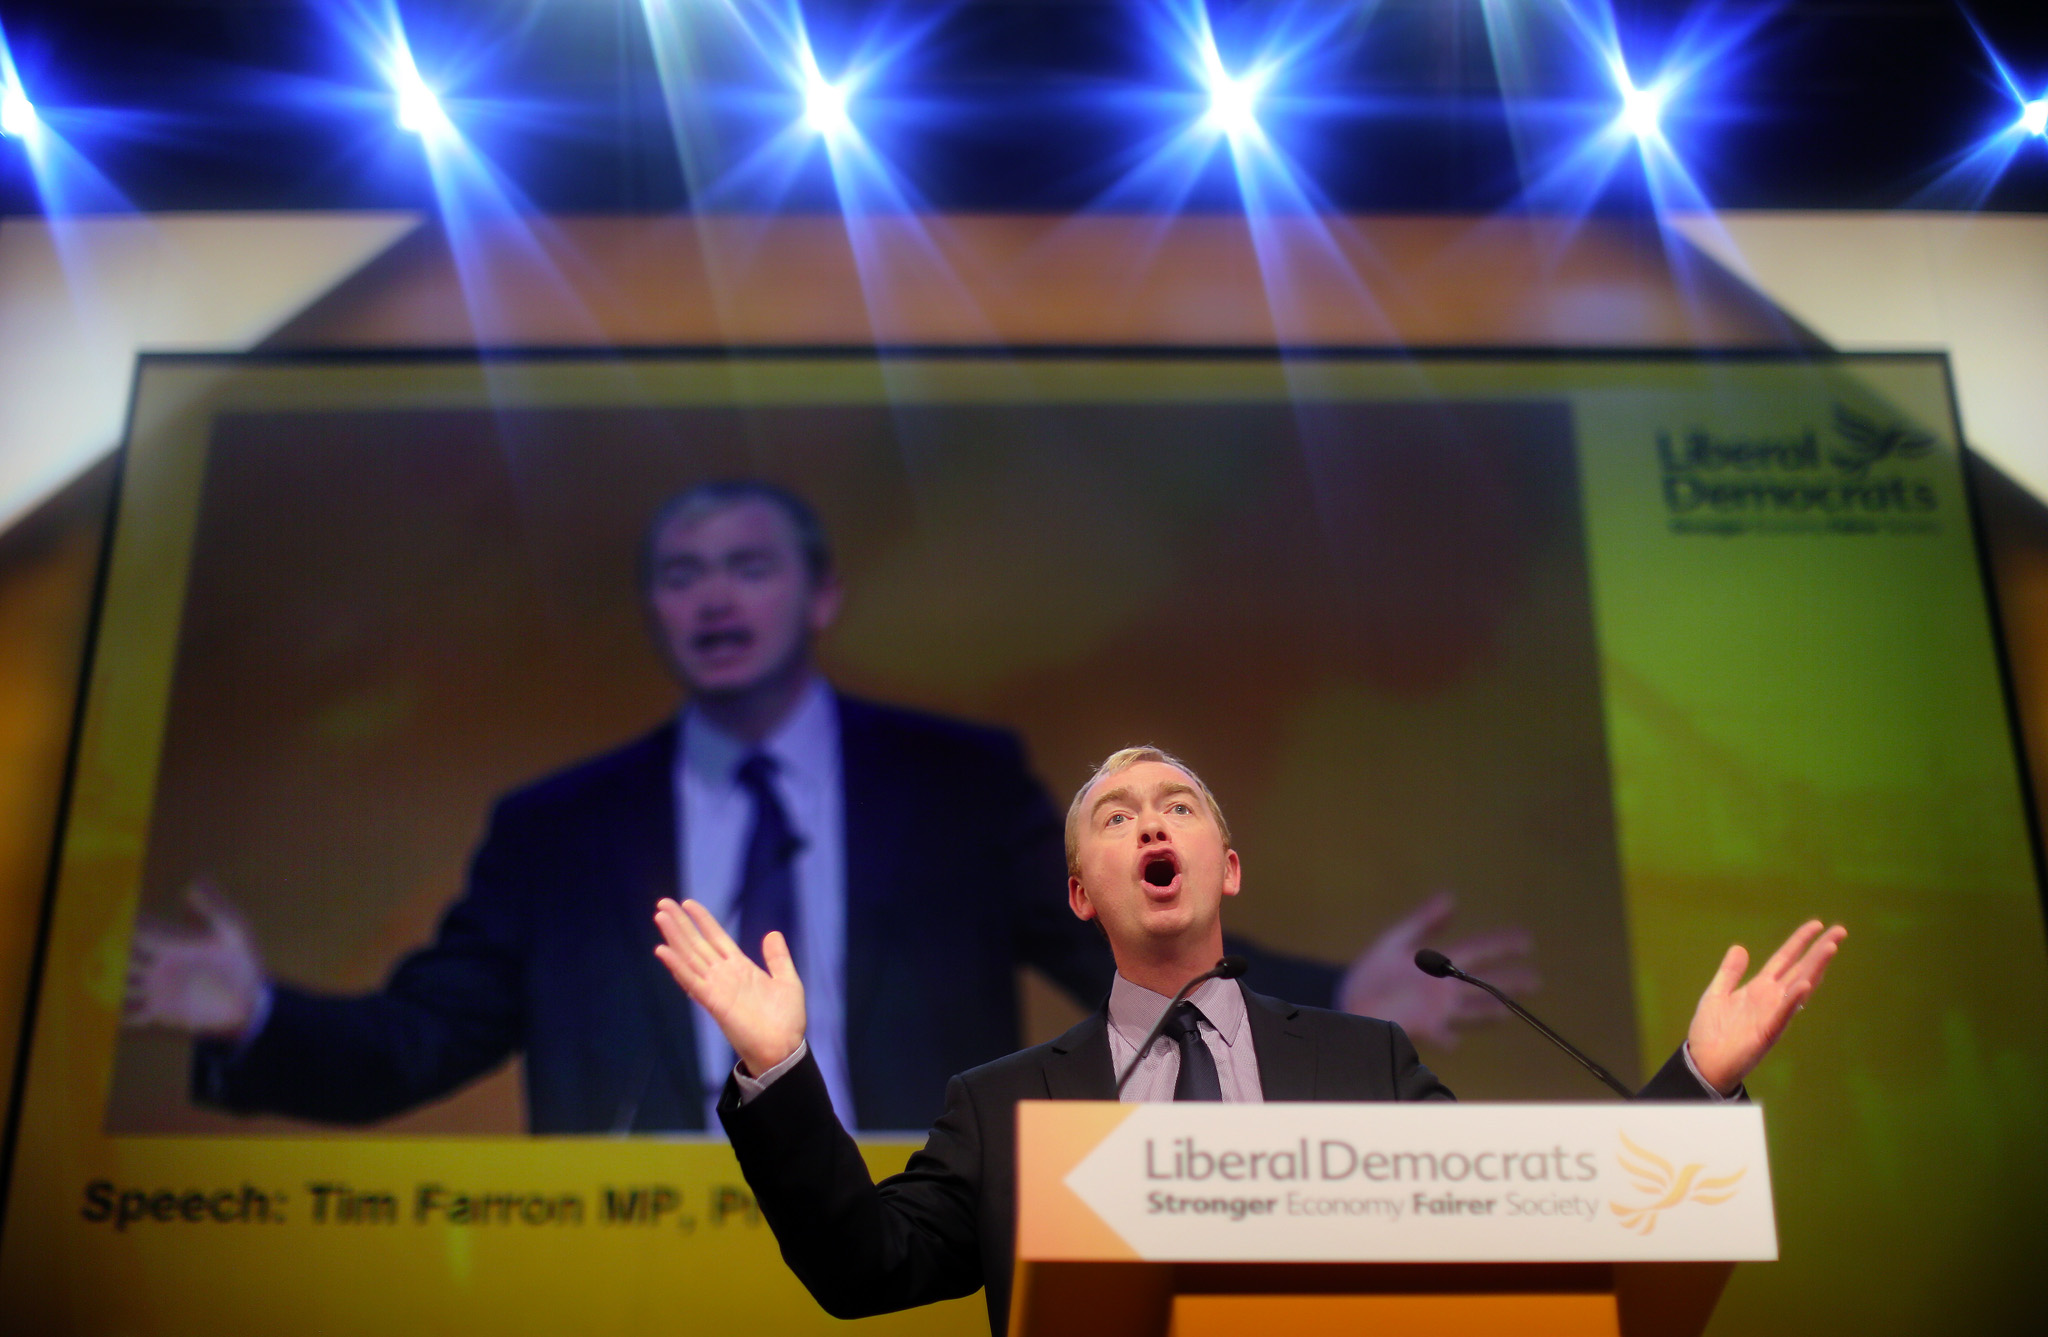 Outgoing party president, Tim Farron MP, speaks at the Liberal Democrat conference in Glasgow.